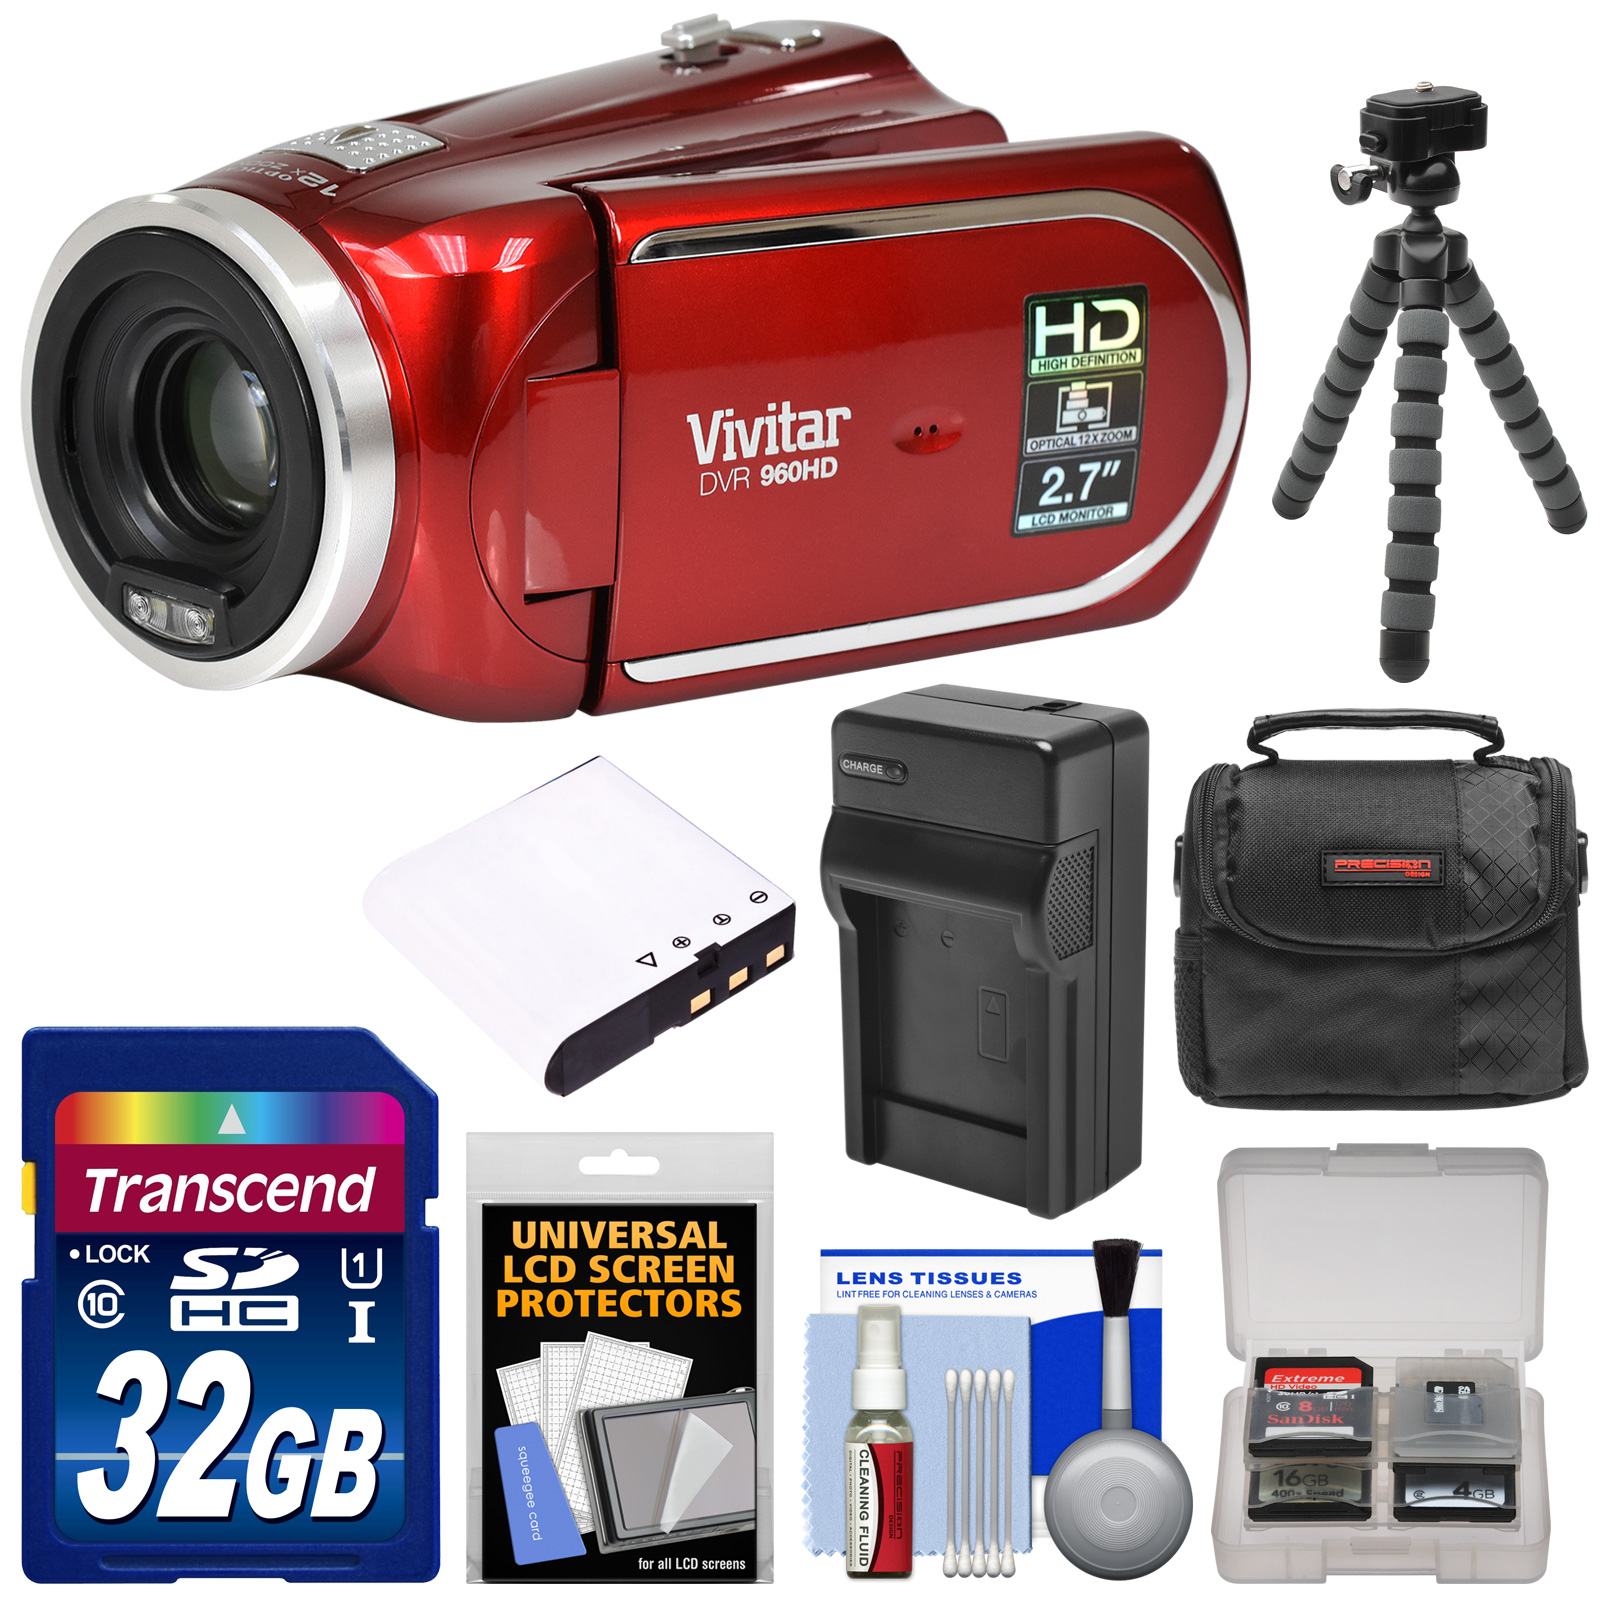 Vivitar DVR 960HD 1080p HD 12x Optical Zoom Video Camera Camcorder (Red) with 32GB Card + Battery & Charger + Case + Tripod + Kit